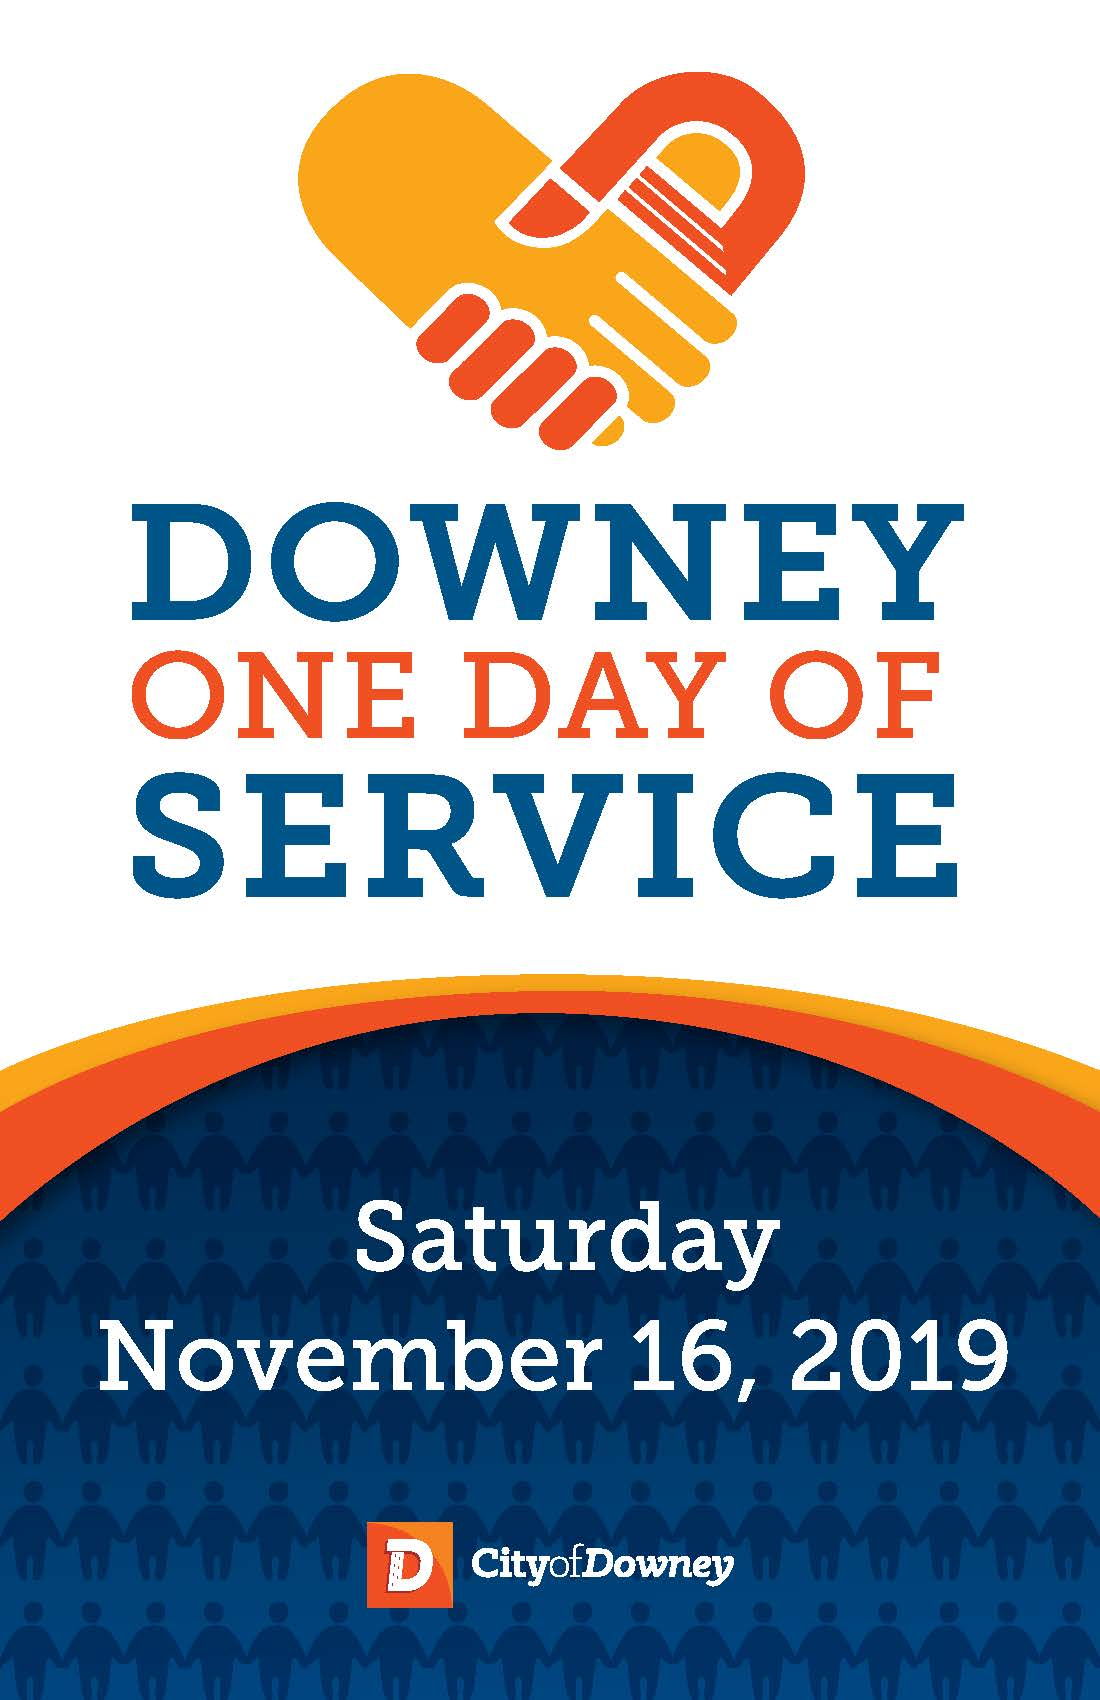 Downey One Day of Service